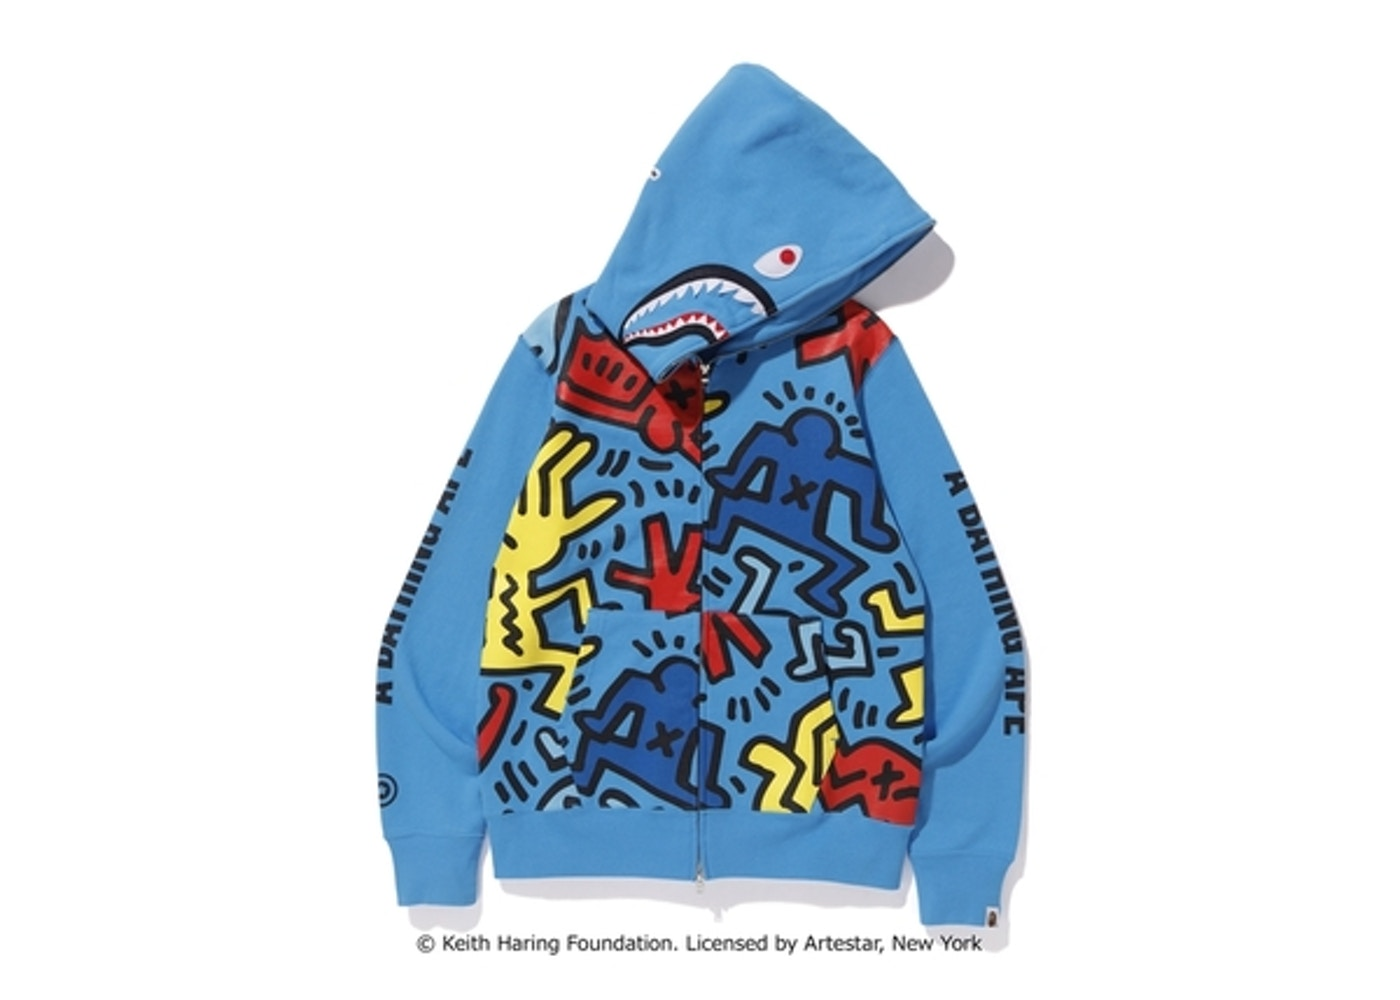 df75ad08 You can buy this Bape x Keith Haring Shark Full Zip Hoodie online today on  StockX. Have this Bape hoodie to sell? List an Ask today on the StockX ...